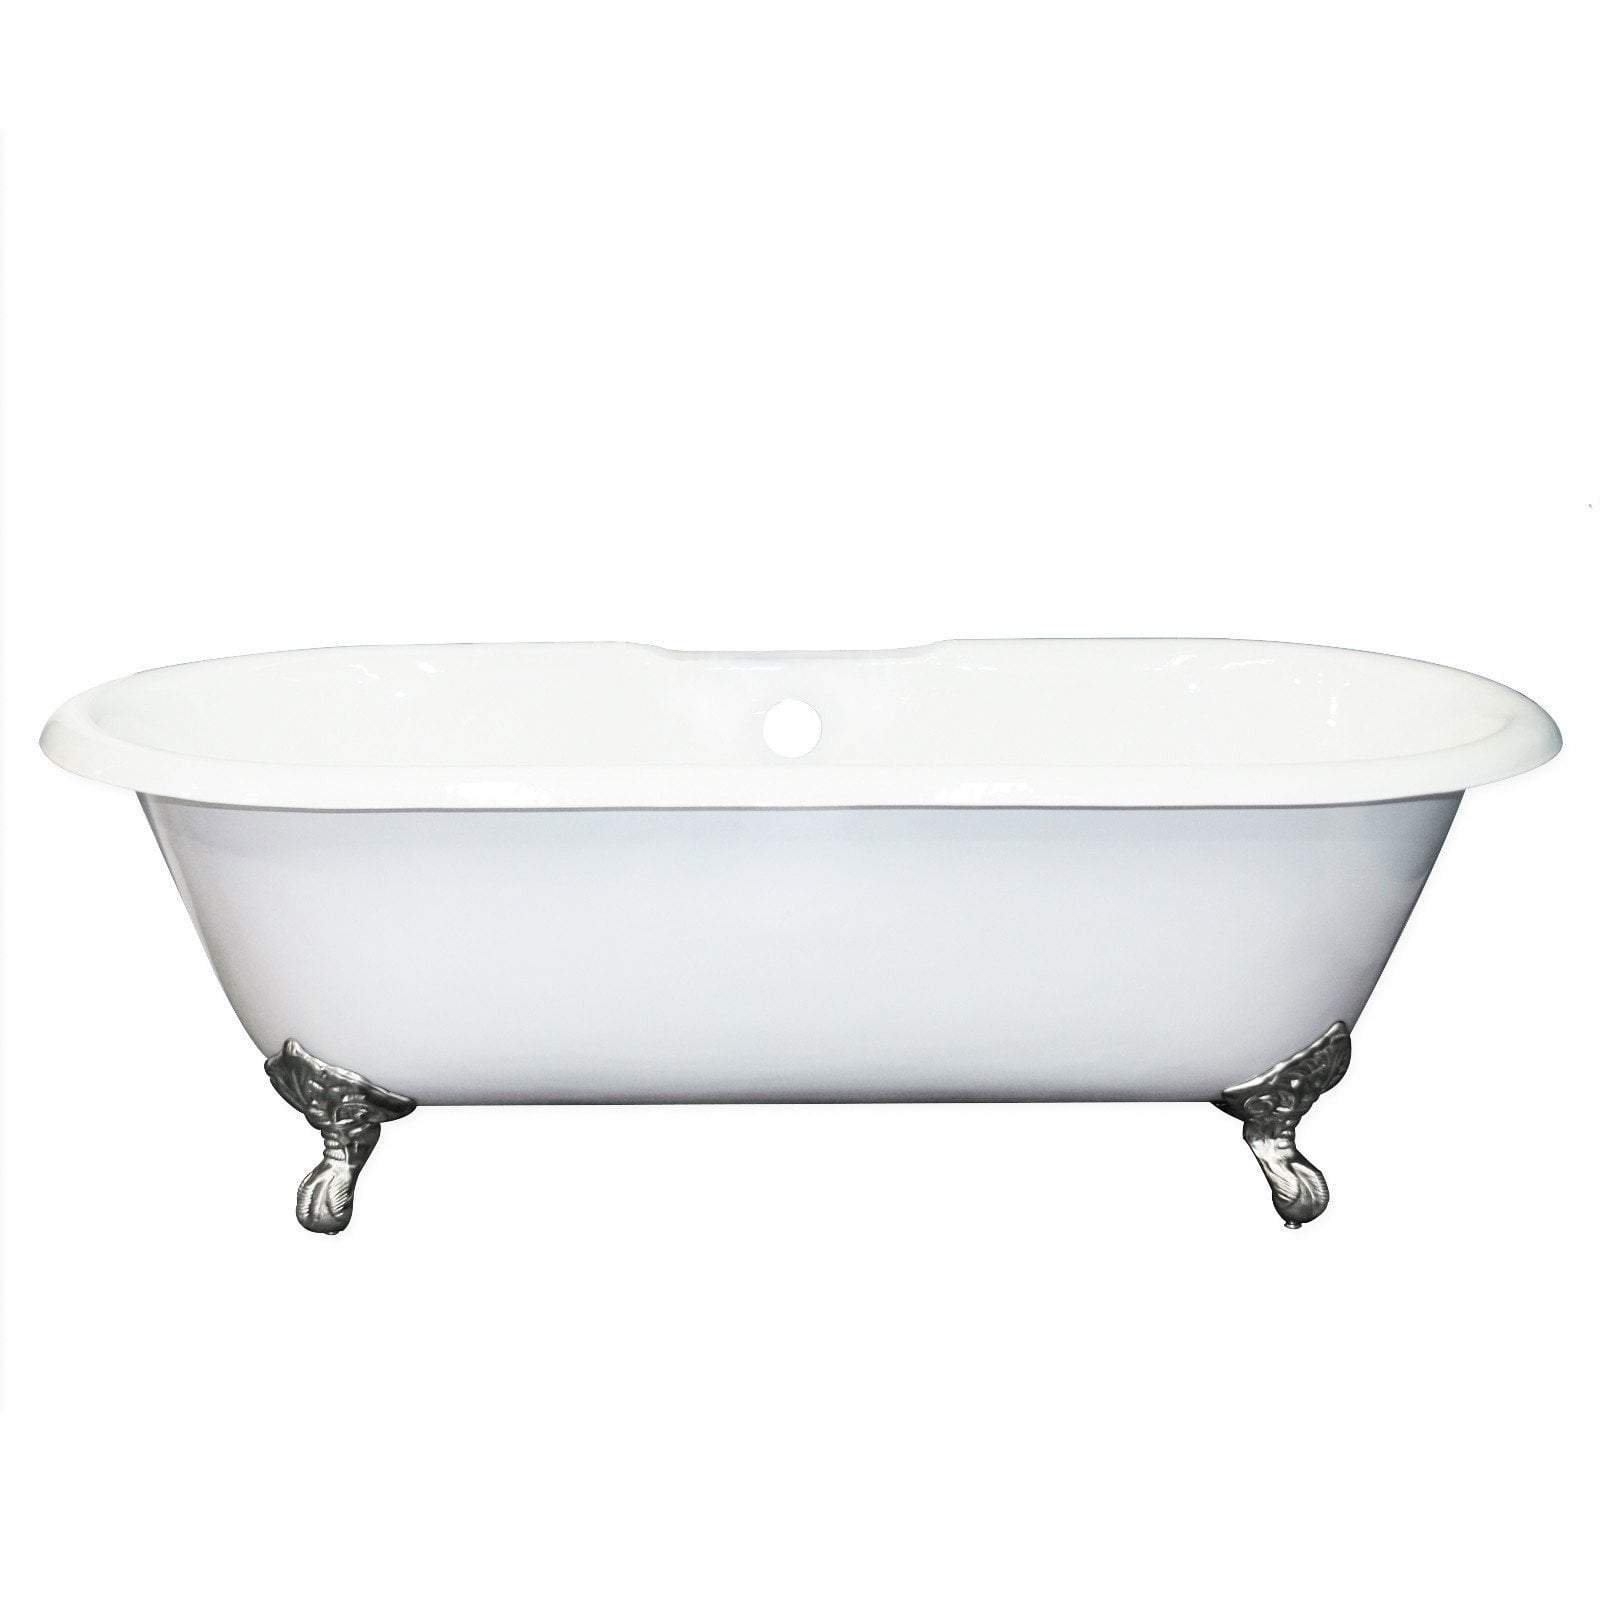 "67"" Cast Iron Double Ended Clawfoot Tub, Deck Mount Faucet Drillings"